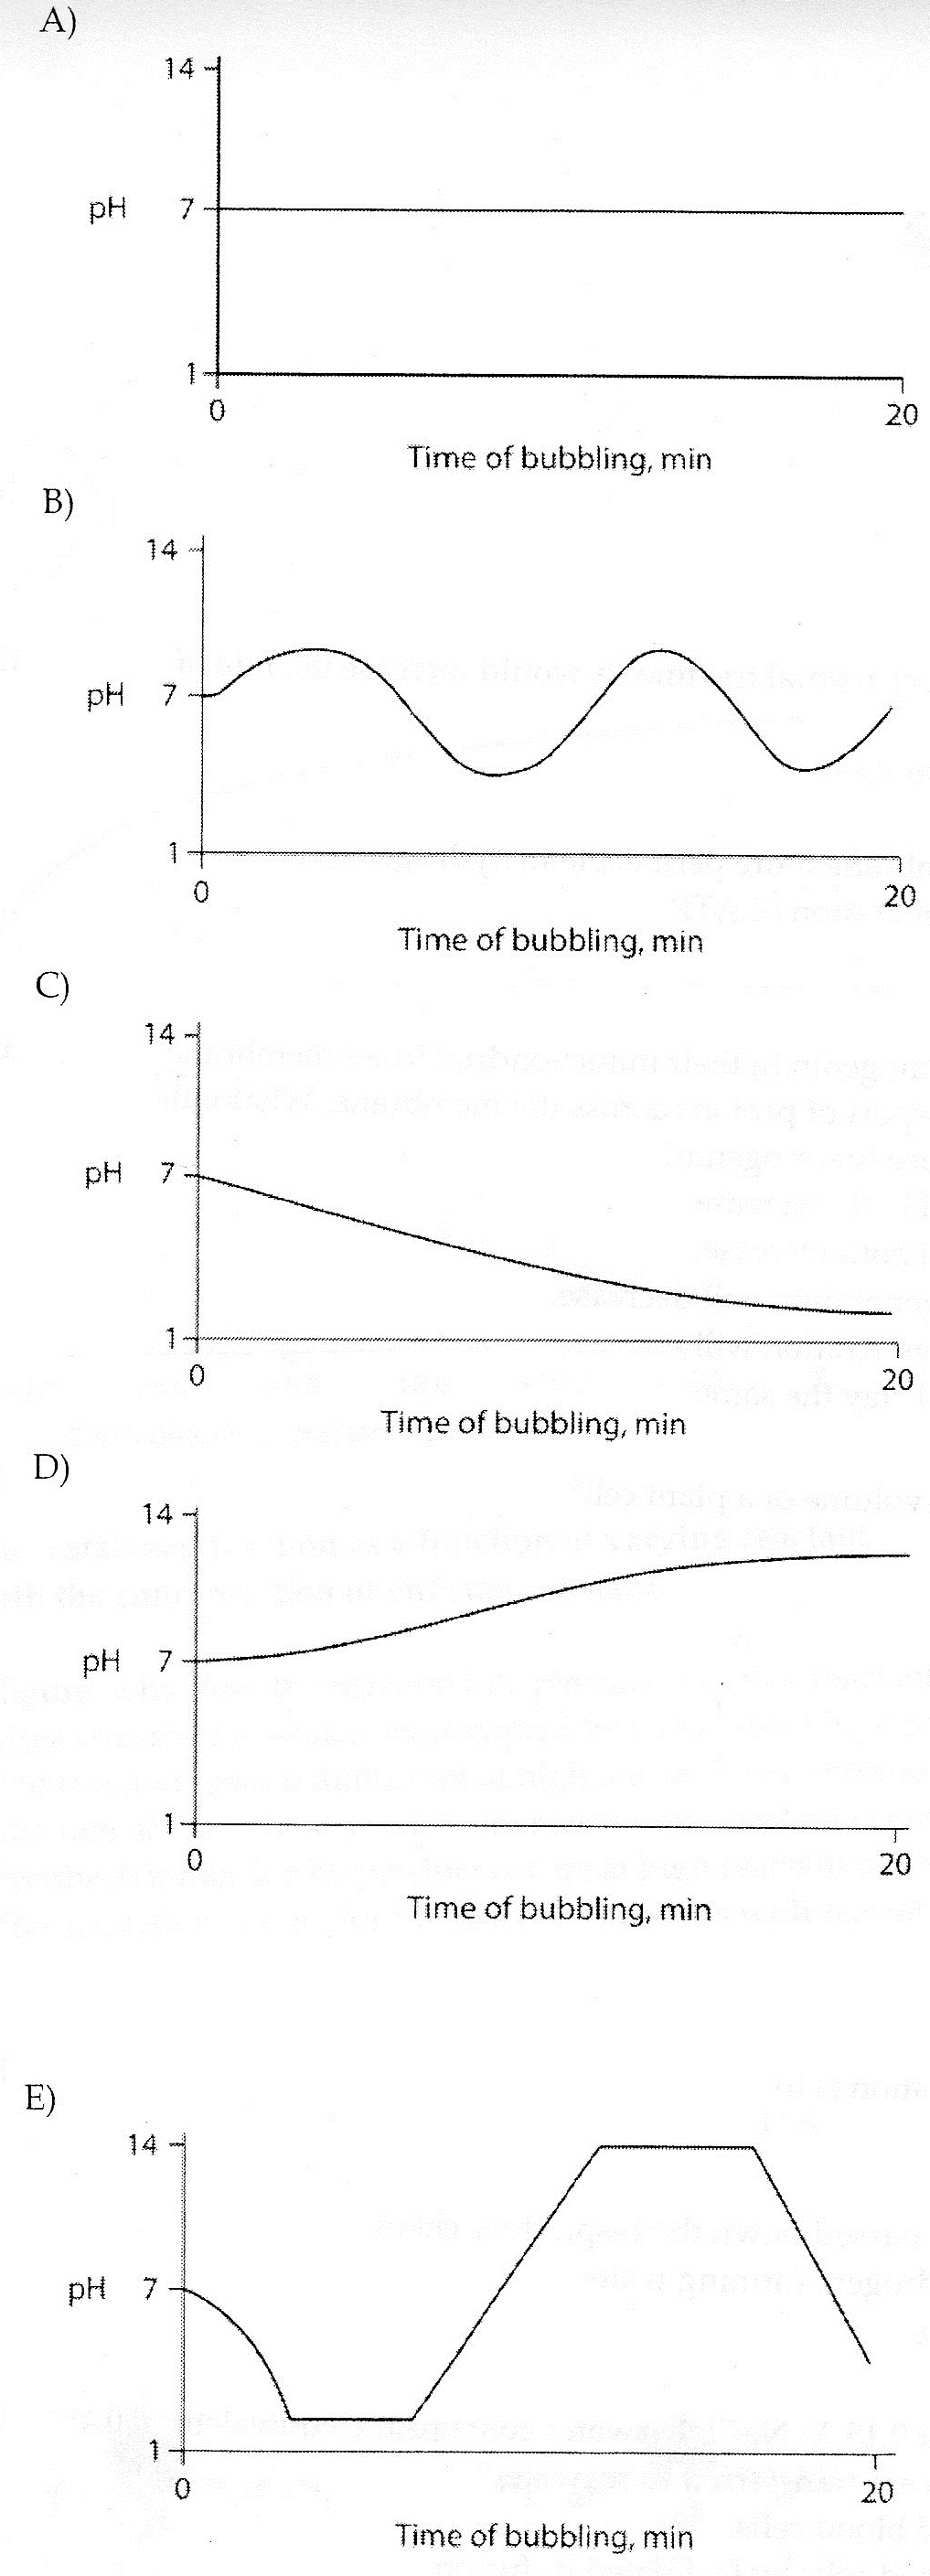 Carbon dioxide (CO2) is readily soluble in water, according to the equation CO2 + H2O  H2CO3. Carbonic acid (H2CO3) is a weak acid. If CO2 is bubbled into a beaker containing pure, freshly distilled water, which of the following graphs correctly describes the results?